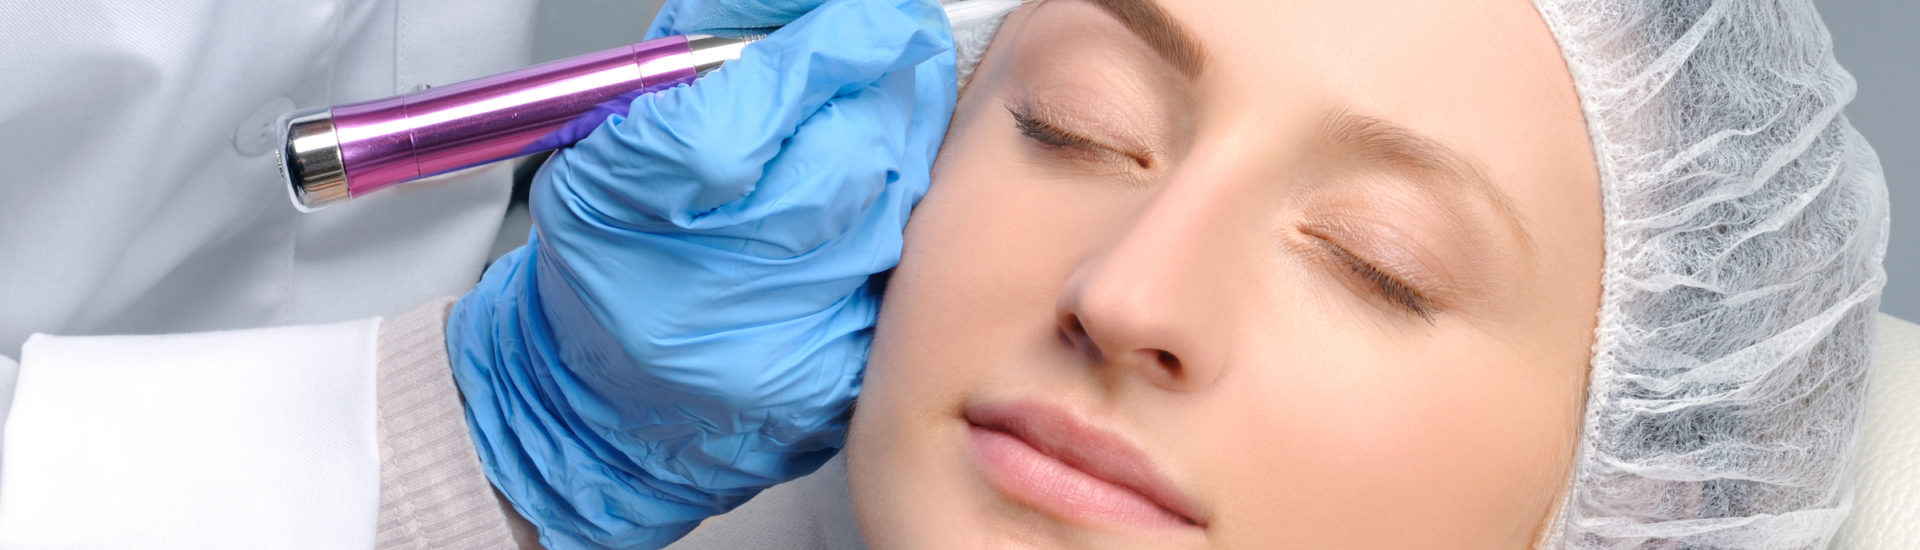 Microblading eyebrows. Cosmetologist making permanent makeup. Attractive woman getting facial care and tattoo at beauty salon